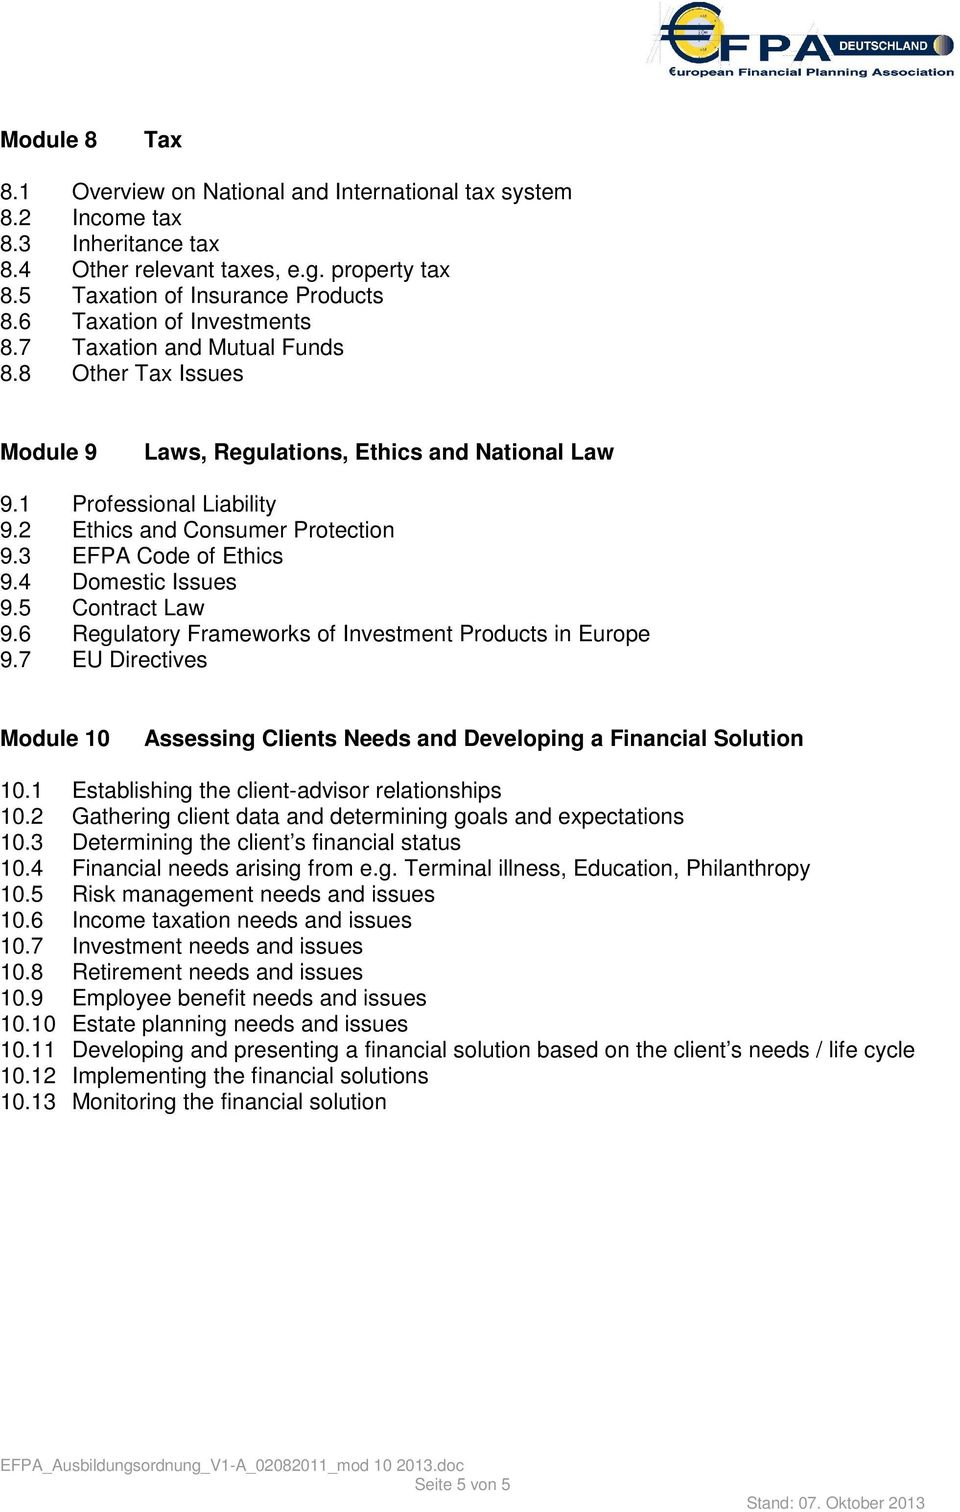 3 EFPA Code of Ethics 9.4 Domestic Issues 9.5 Contract Law 9.6 Regulatory Frameworks of Investment Products in Europe 9.